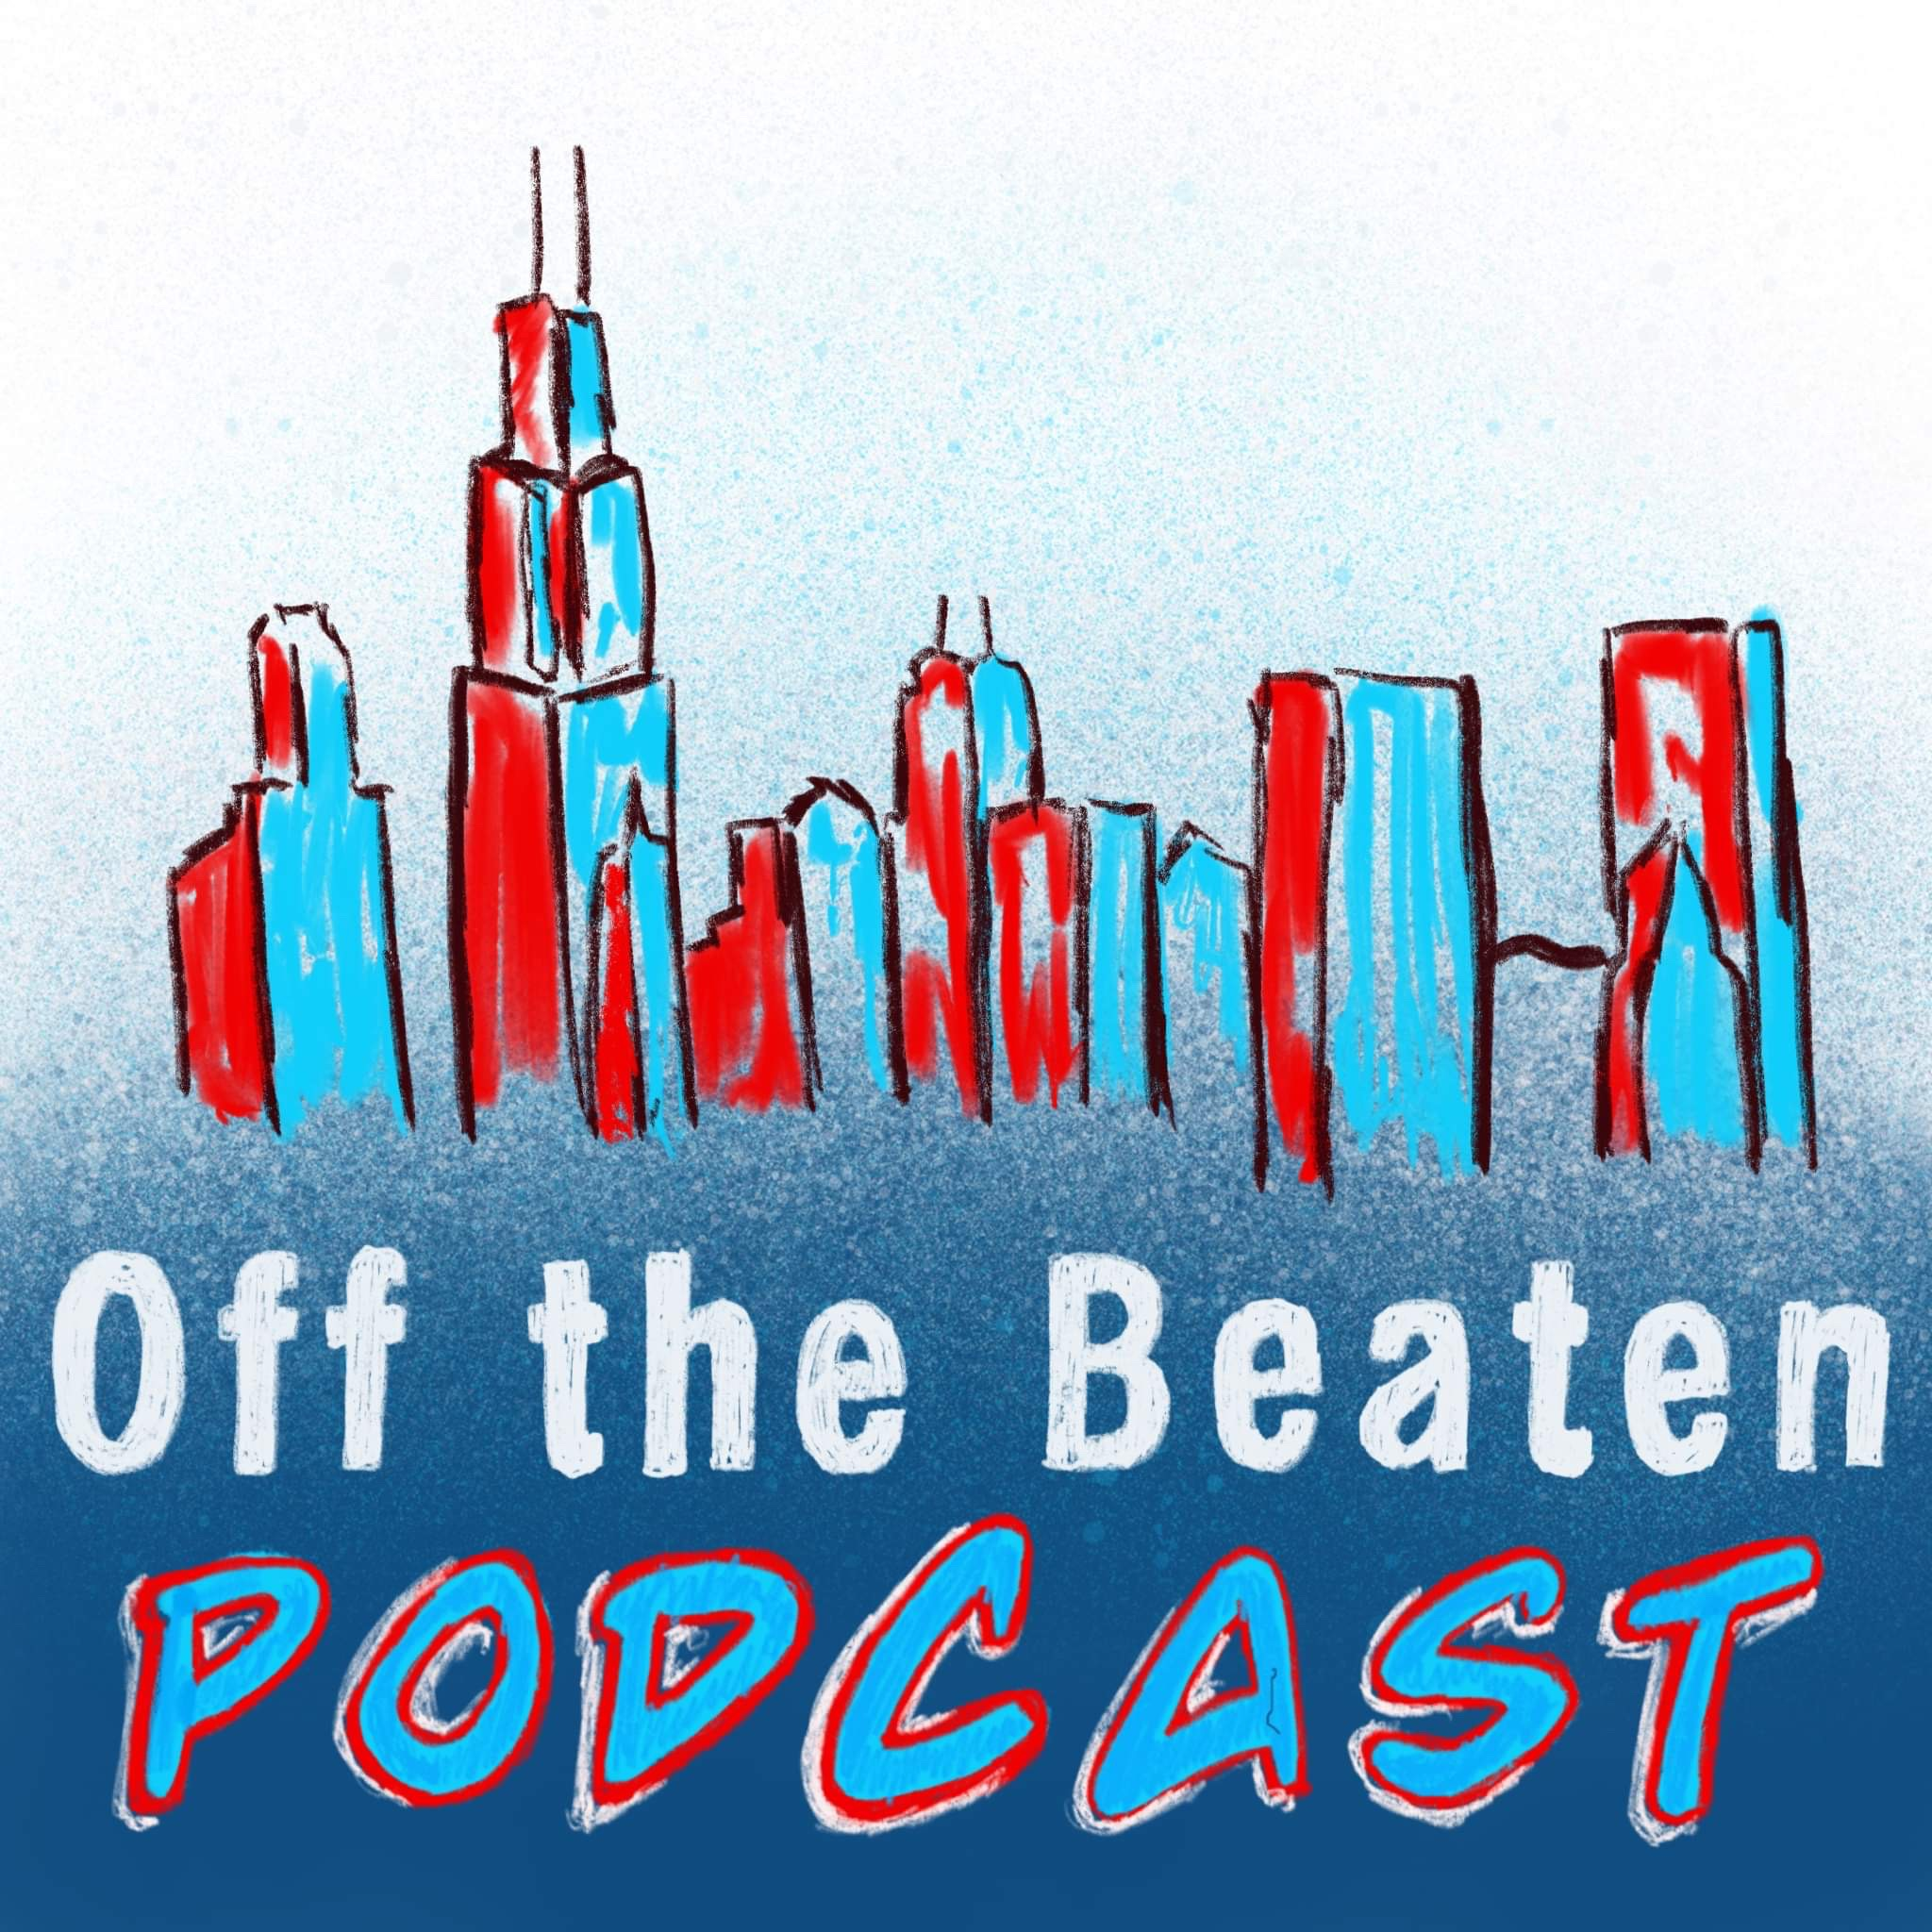 Off The Beaten Podcast